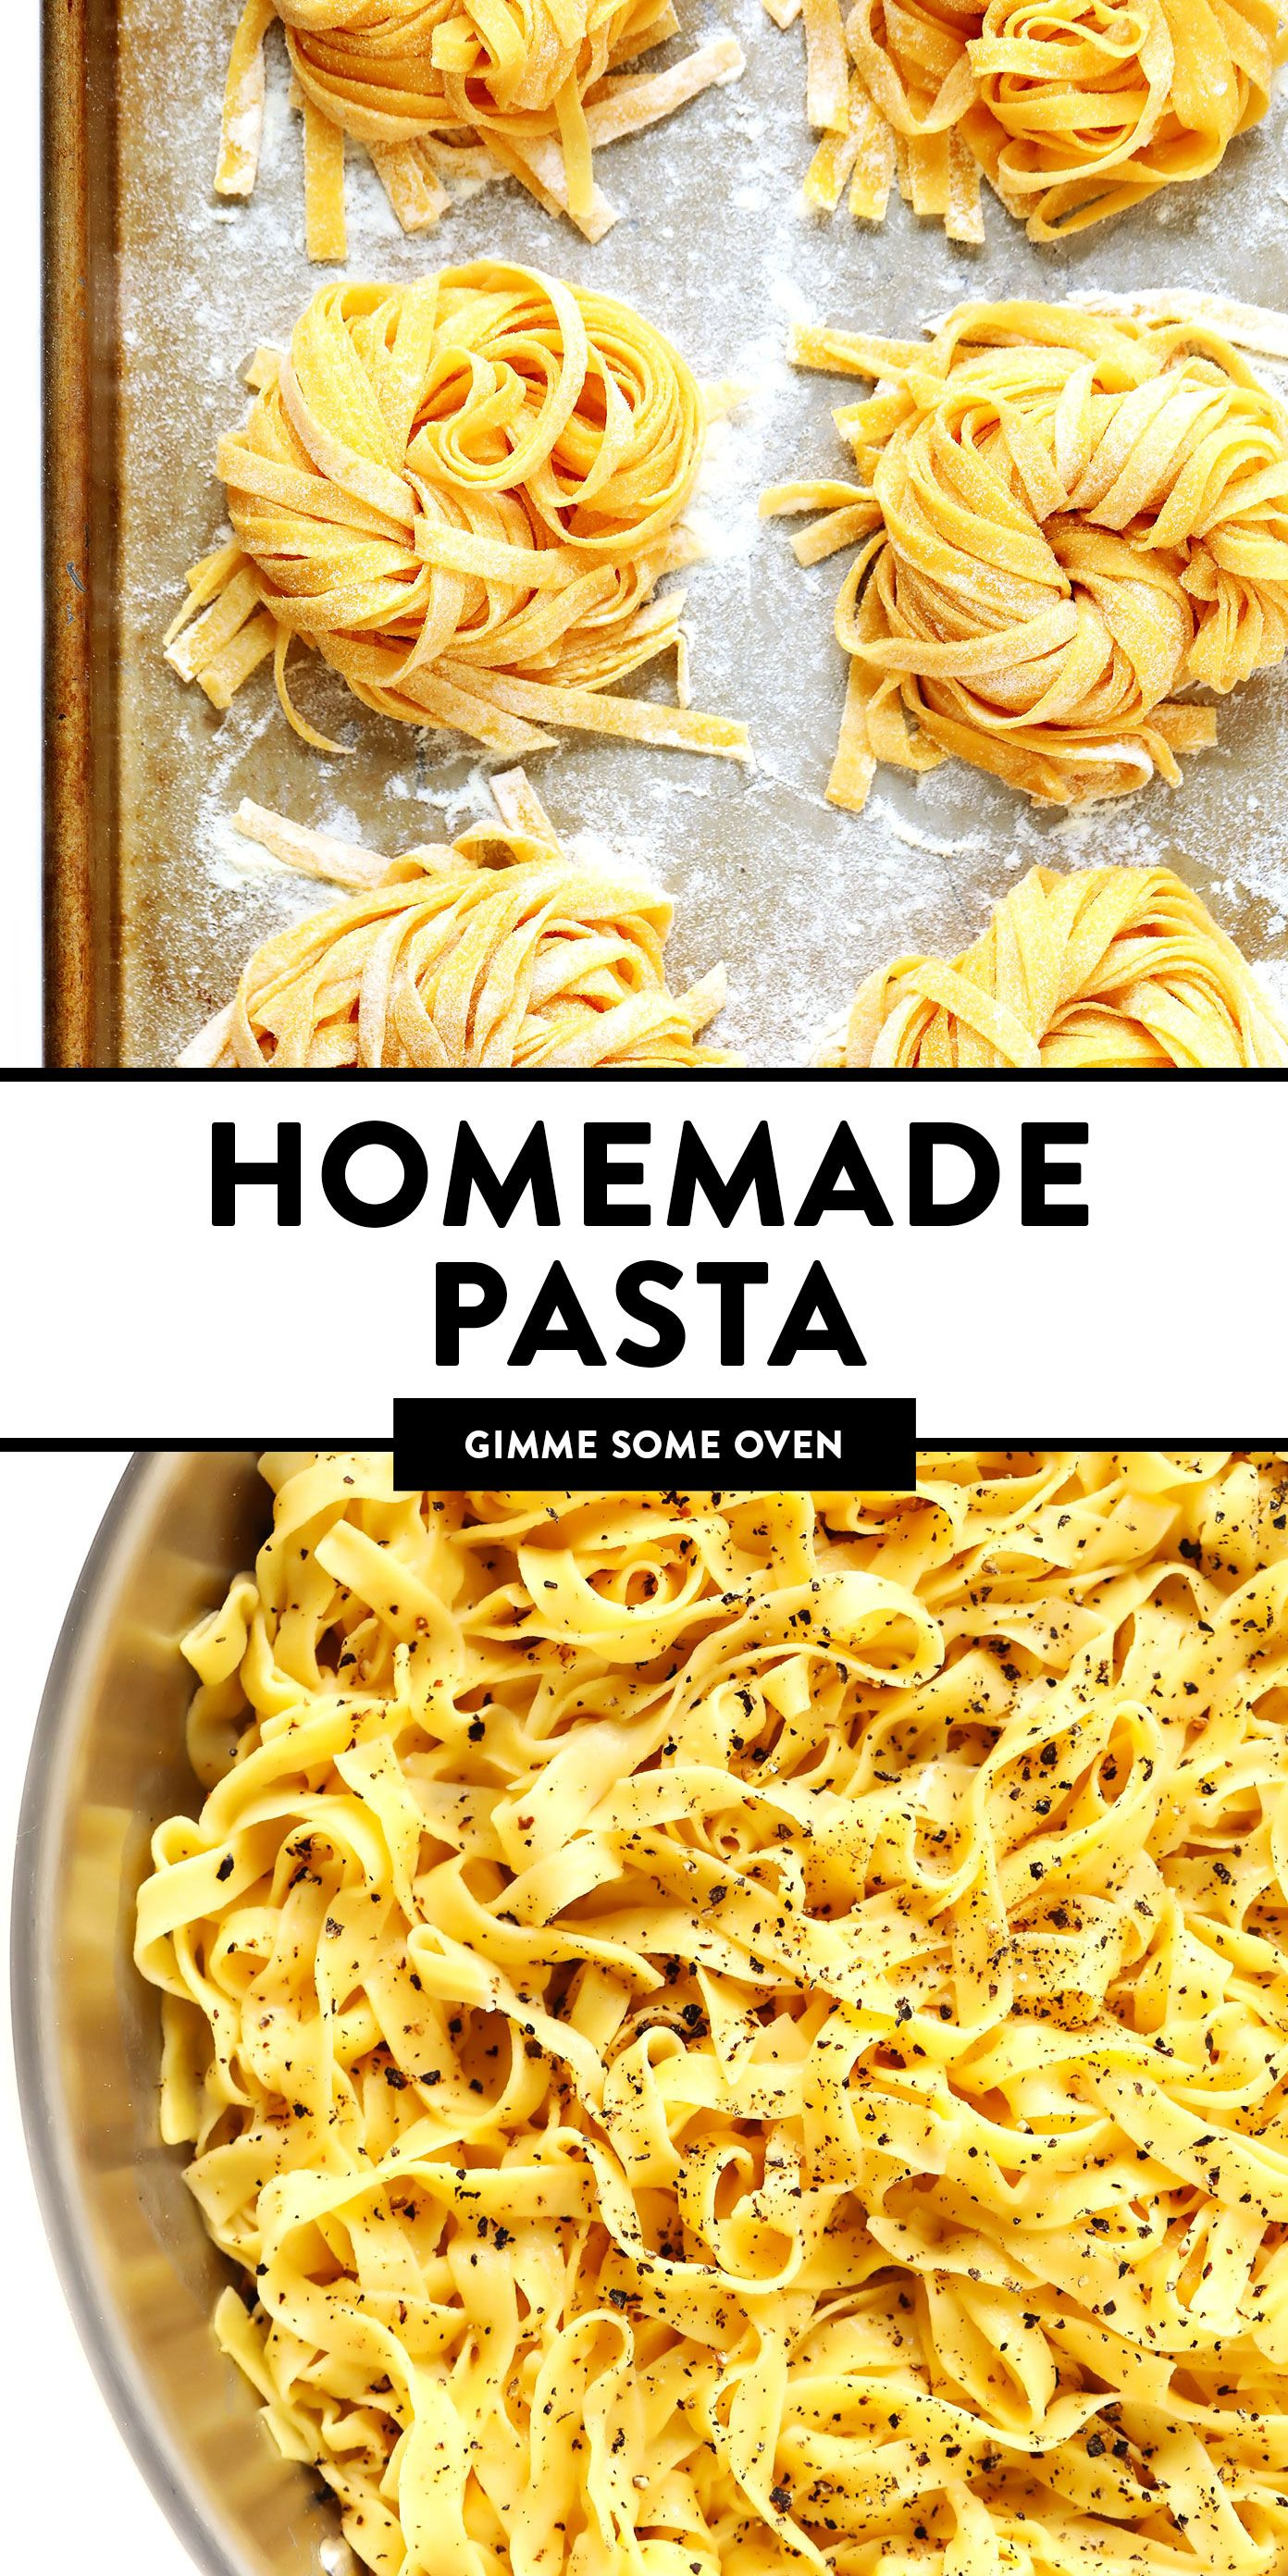 Homemade Pasta Gimme Some Oven Recipe In 2020 Homemade Pasta Recipe Food Processor Recipes Homemade Pasta